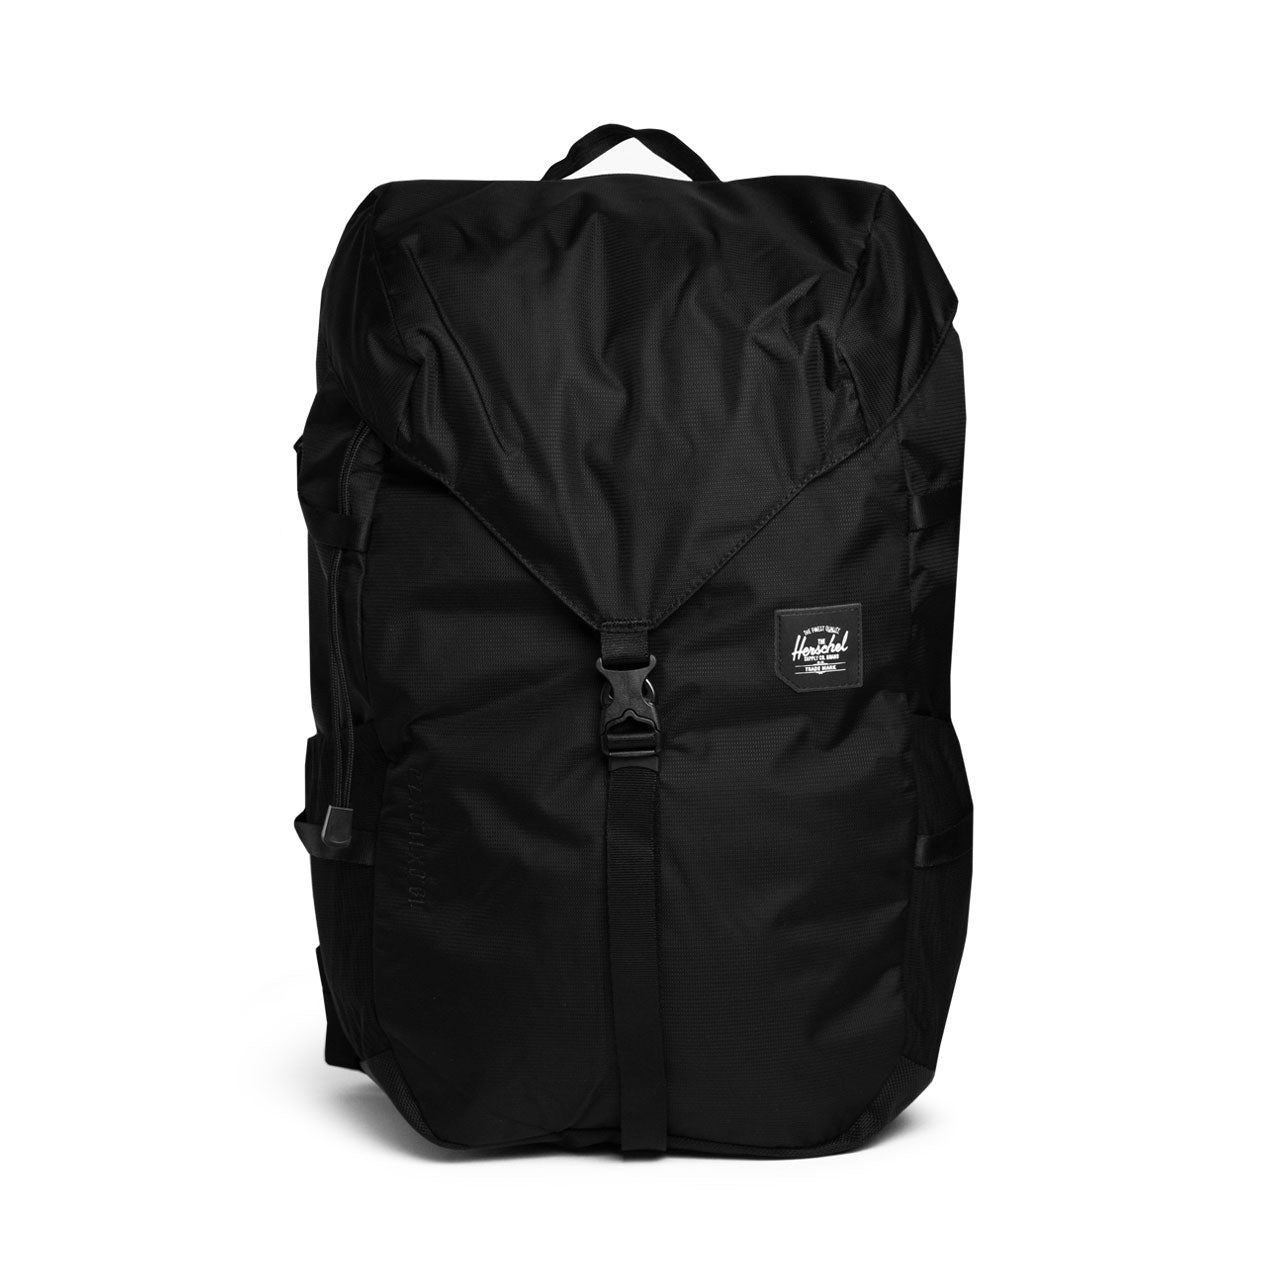 Herschel Supply Co. Barlow Backpack